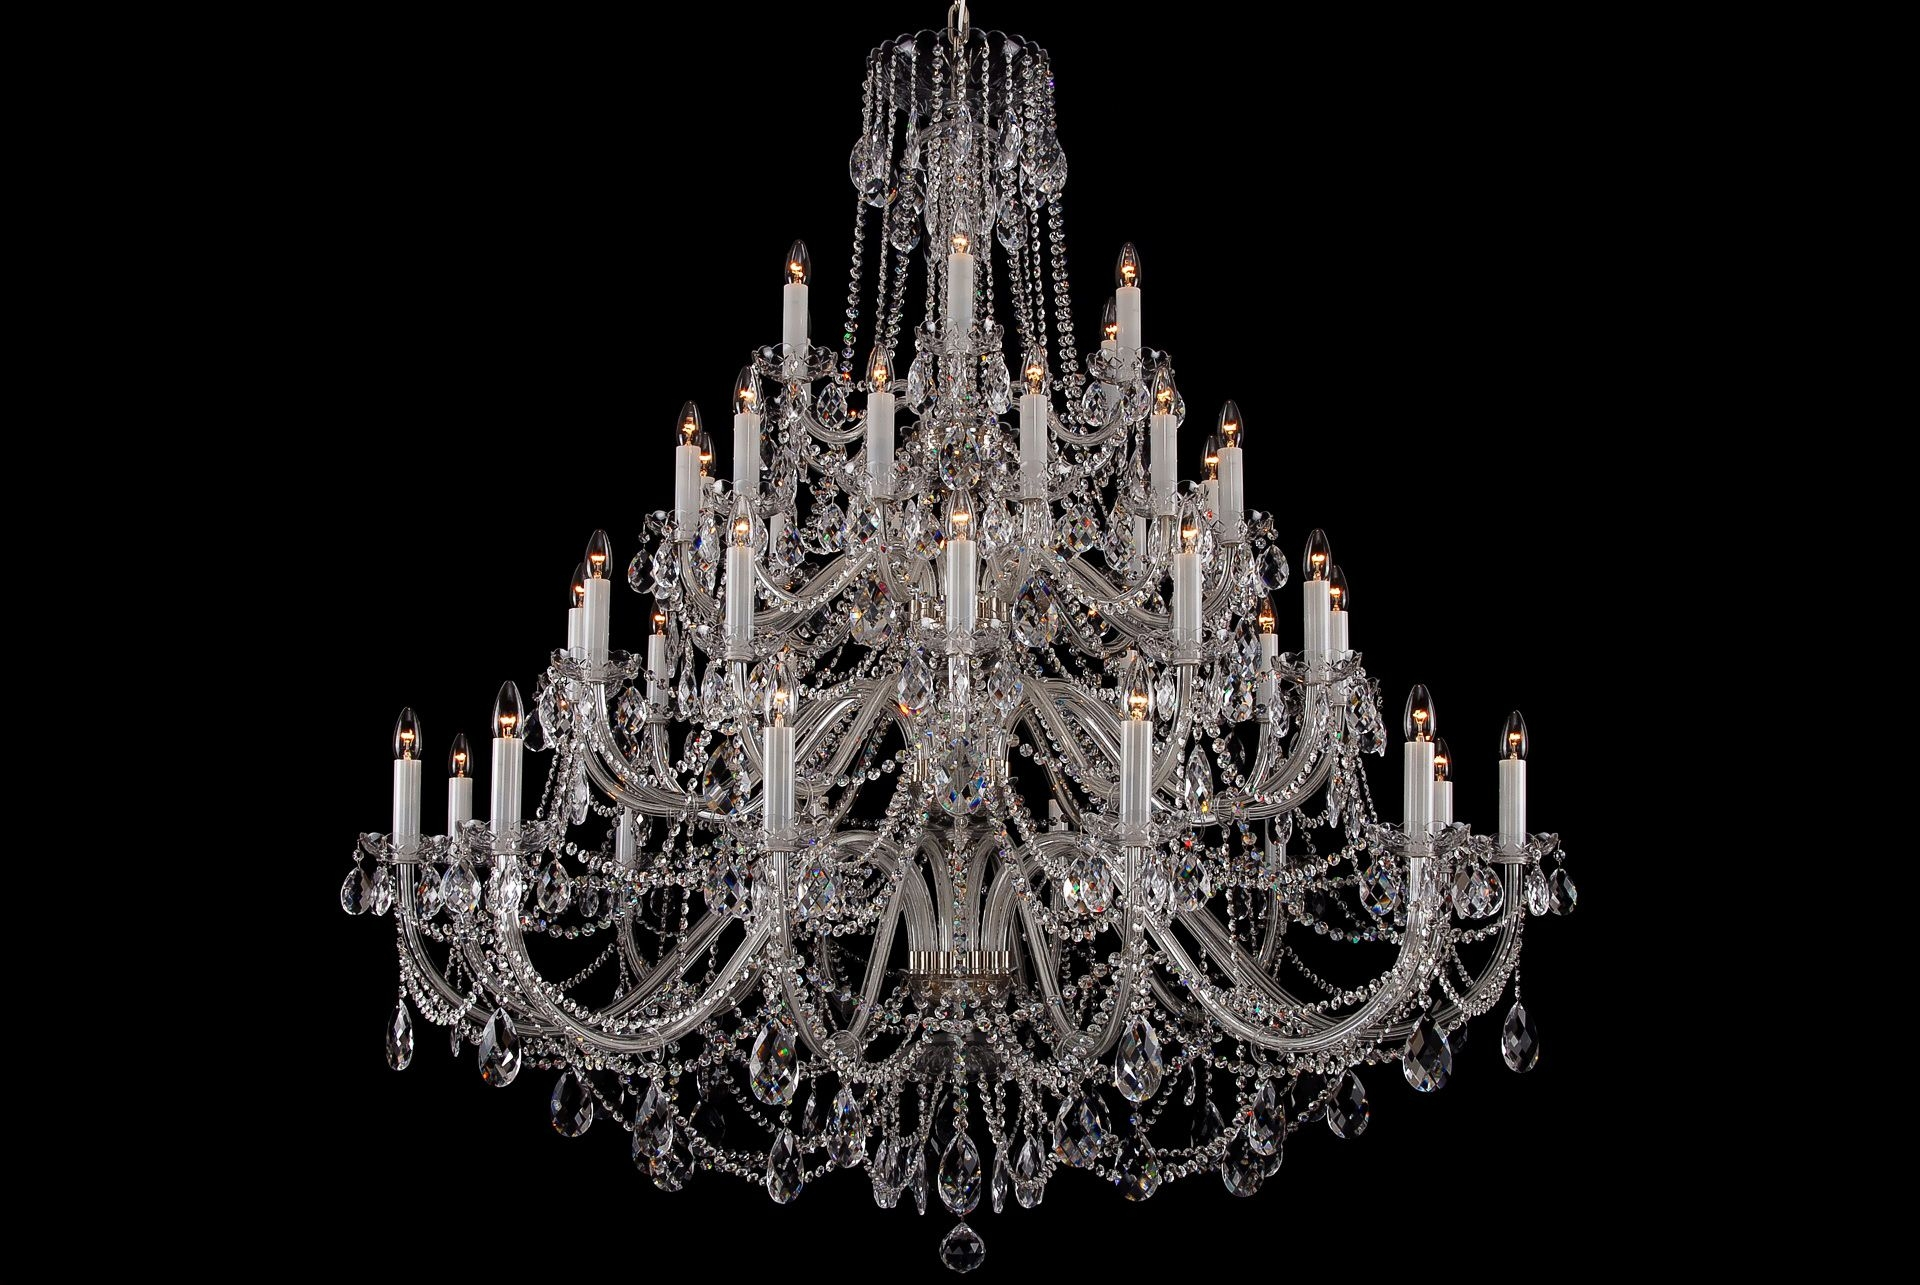 Beautiful Large Crystal Chandeliers Crystal Glass Chandelier This Inside Large Crystal Chandeliers (#1 of 12)